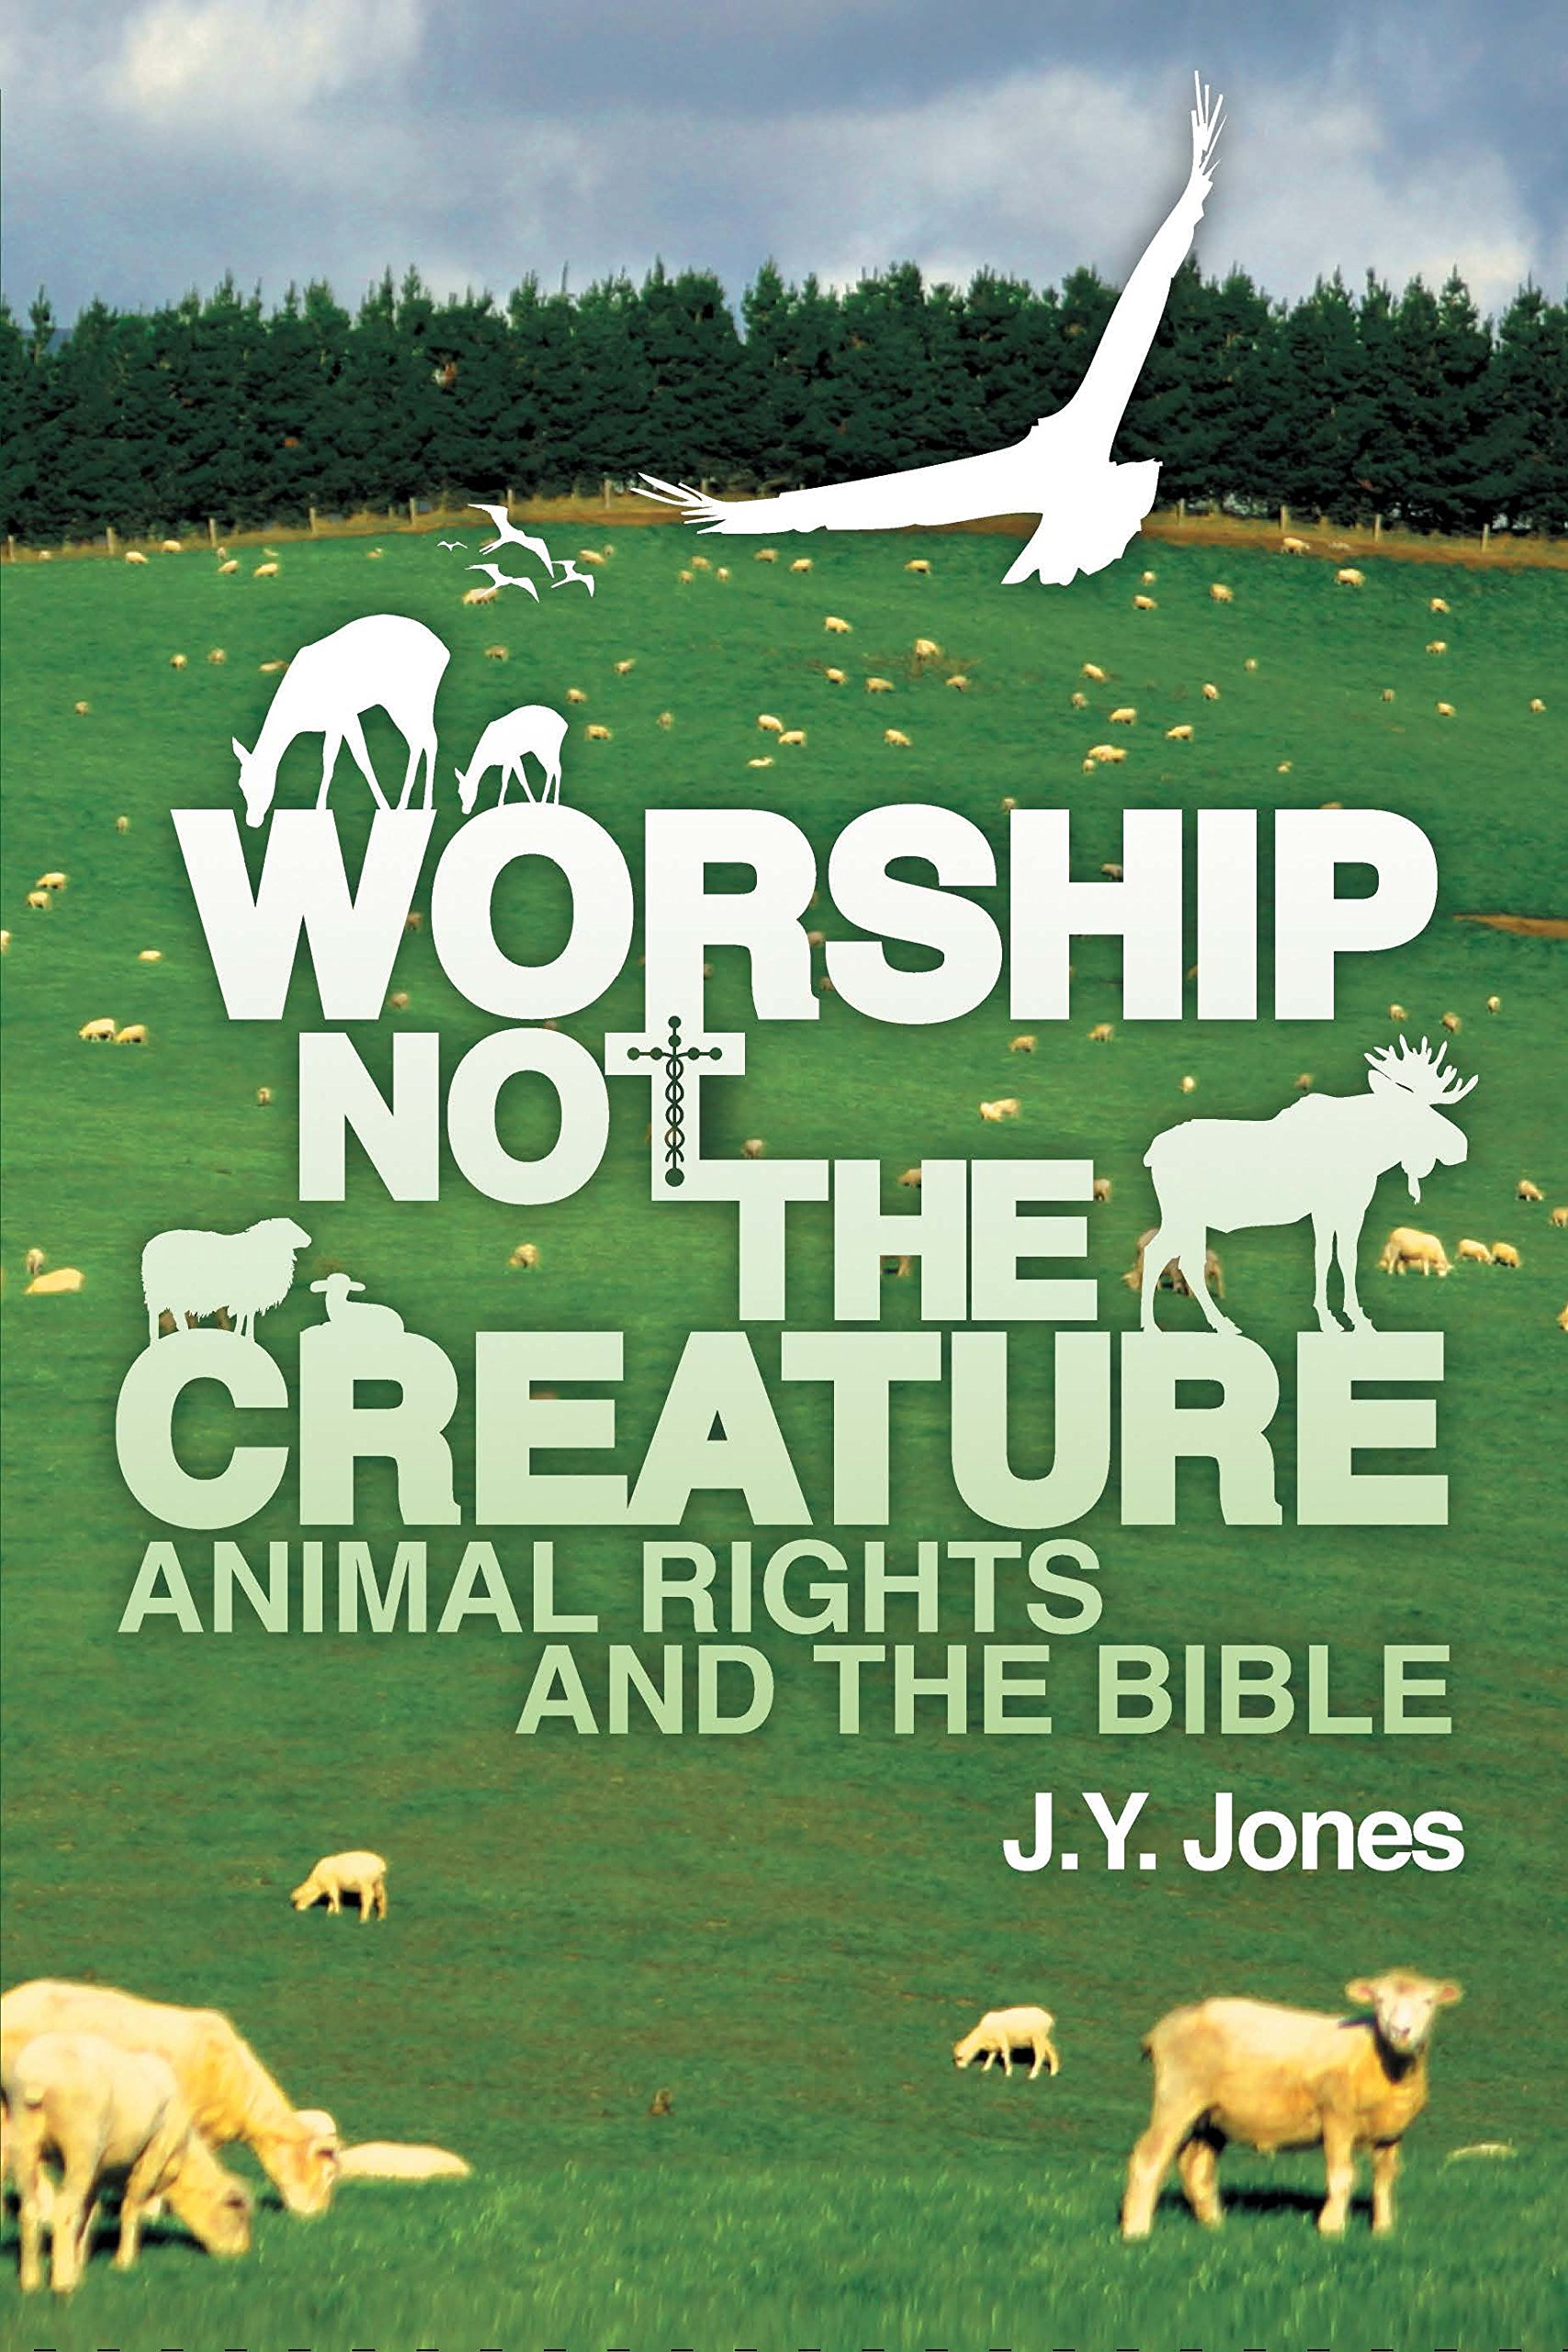 Worship Not The Creature: Animal Rights And The Bible by J.Y. Jones